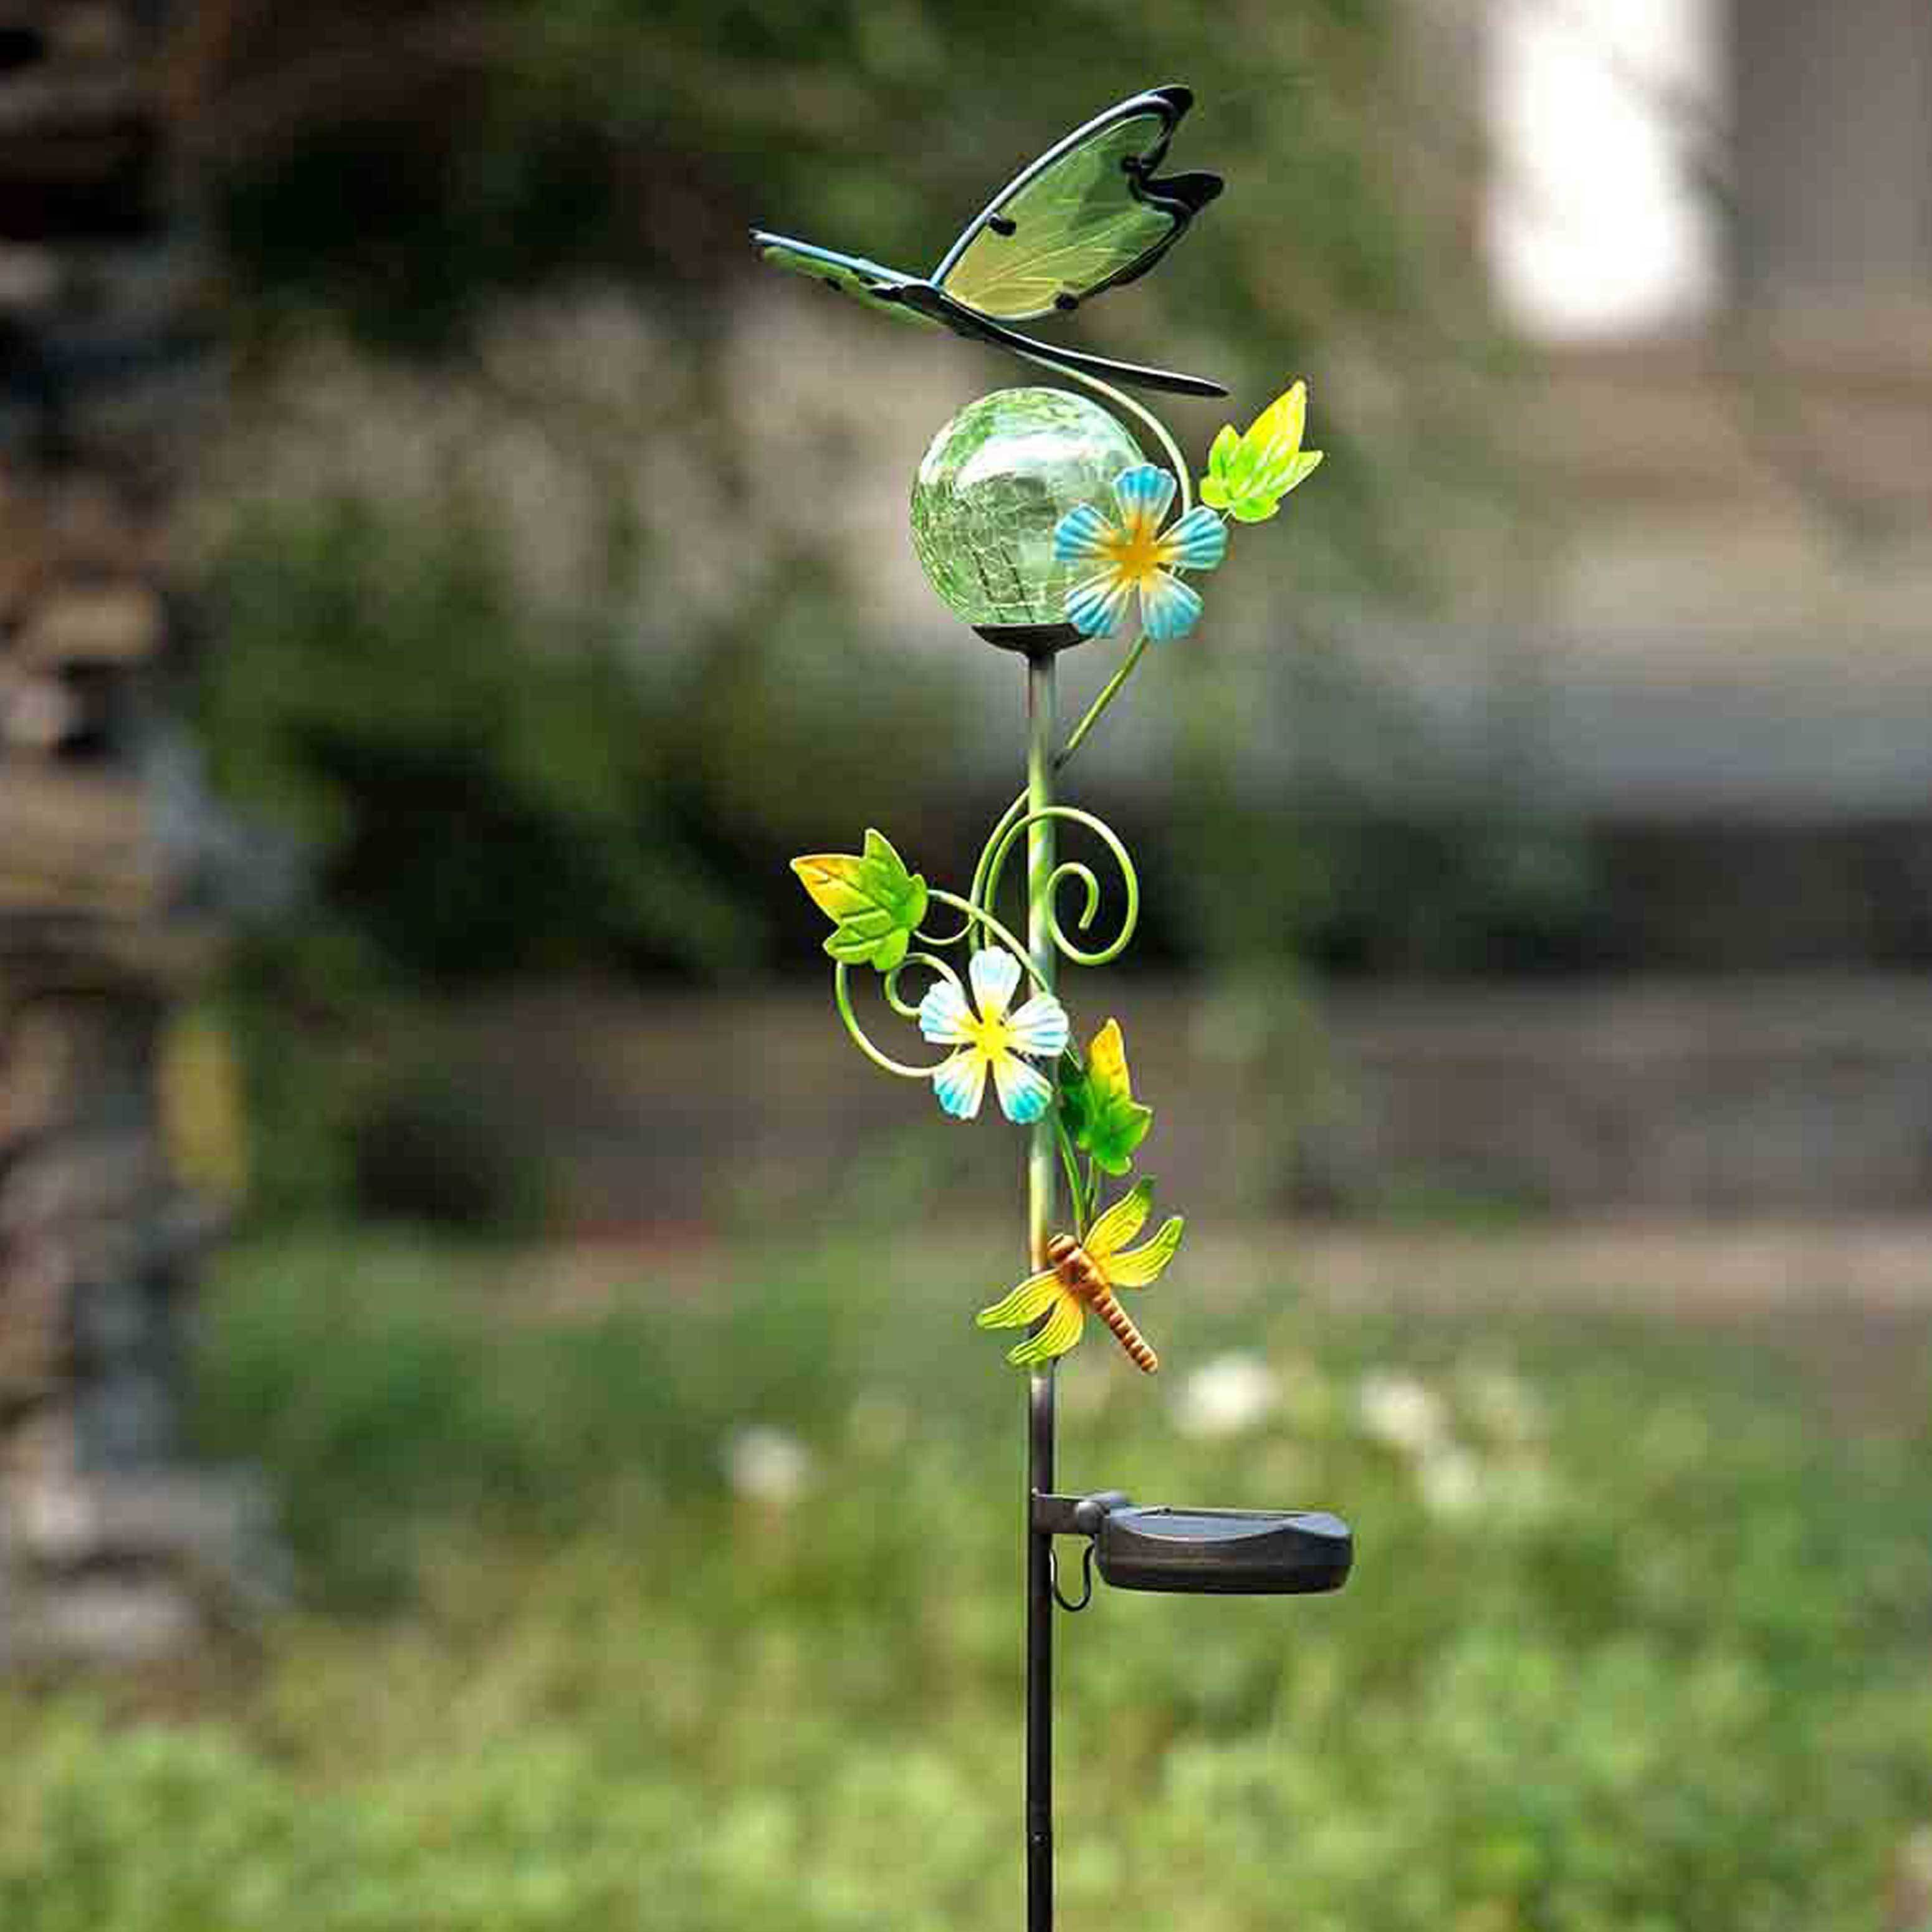 Sunjoy Dragonfly Led Solar Garden Stake  Free Shipping On